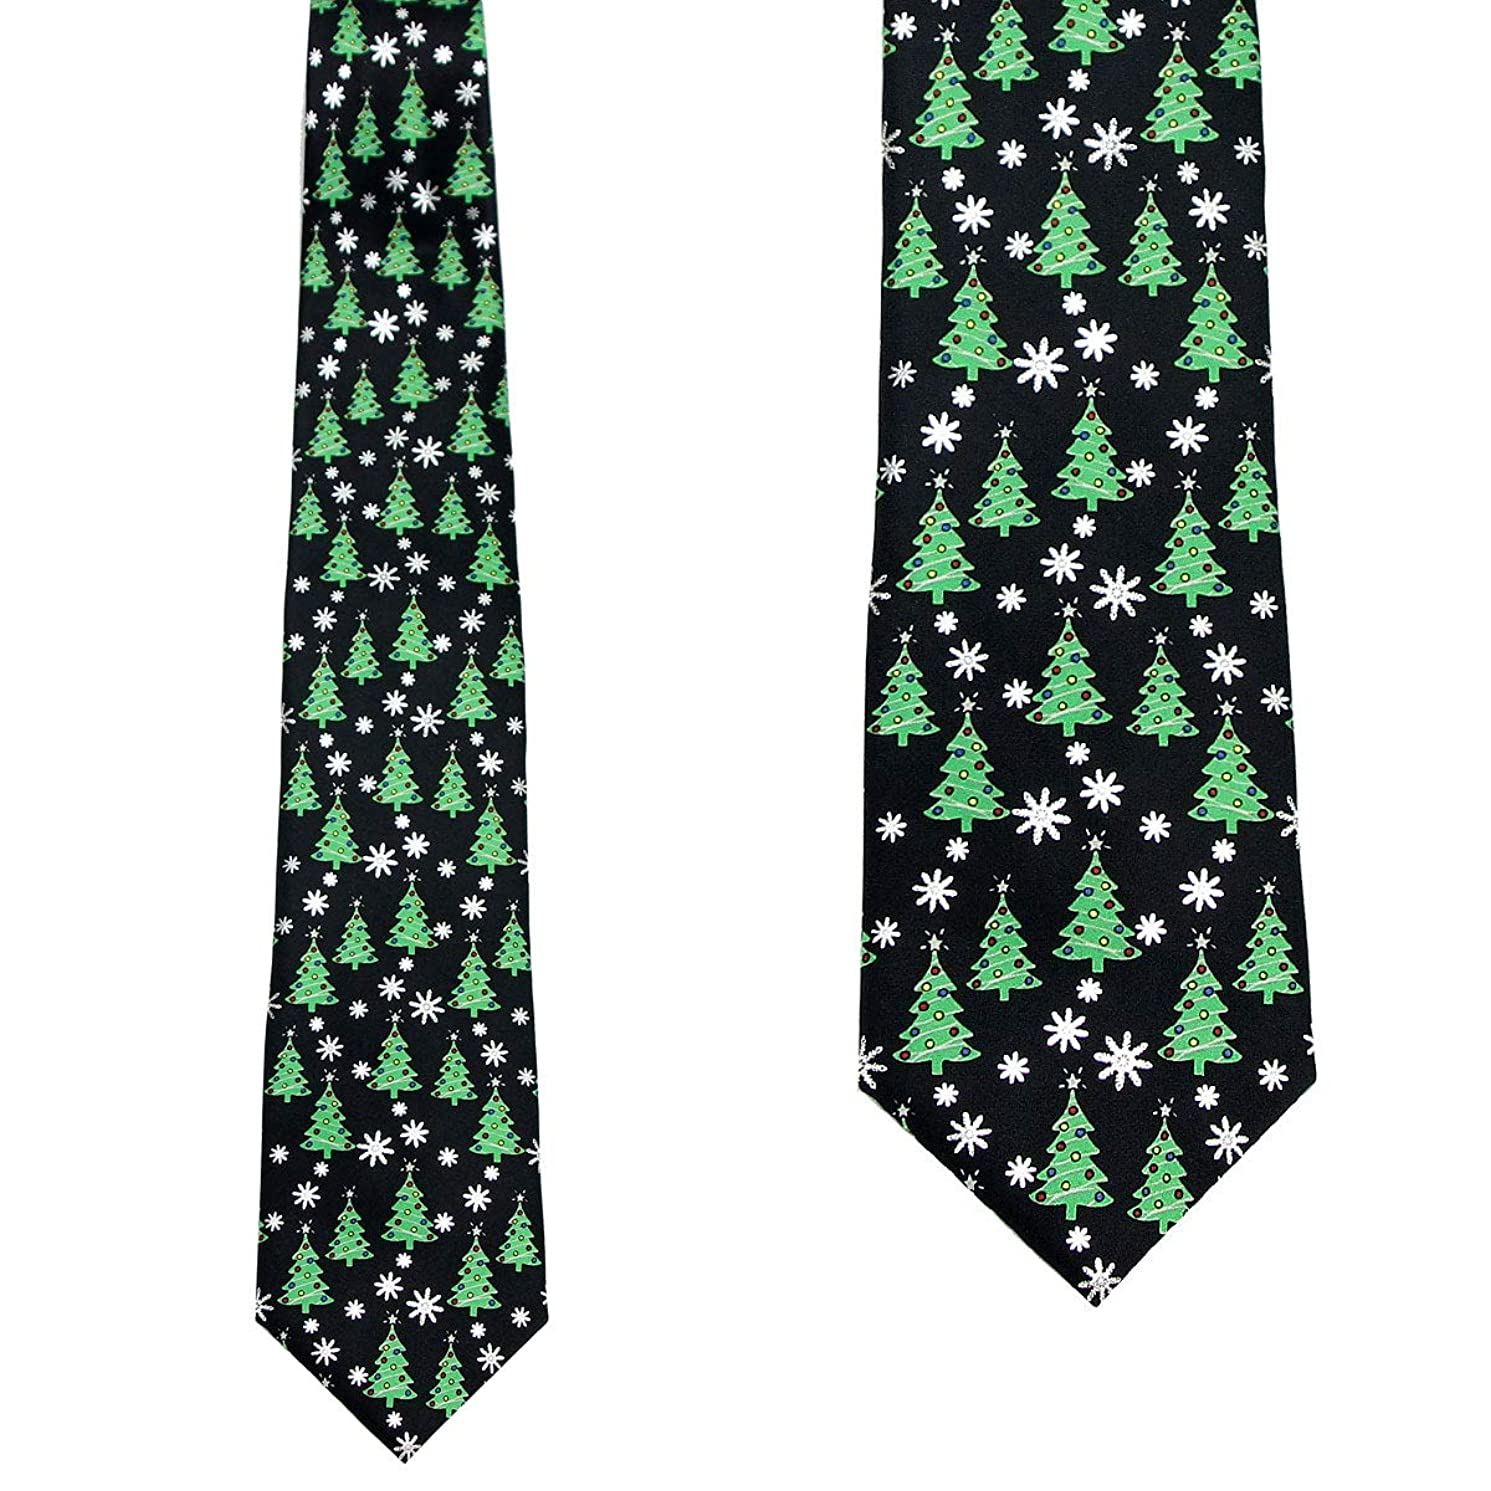 Mumusung Men's Christmas Novelty Tie - Merry Christmas Necktie